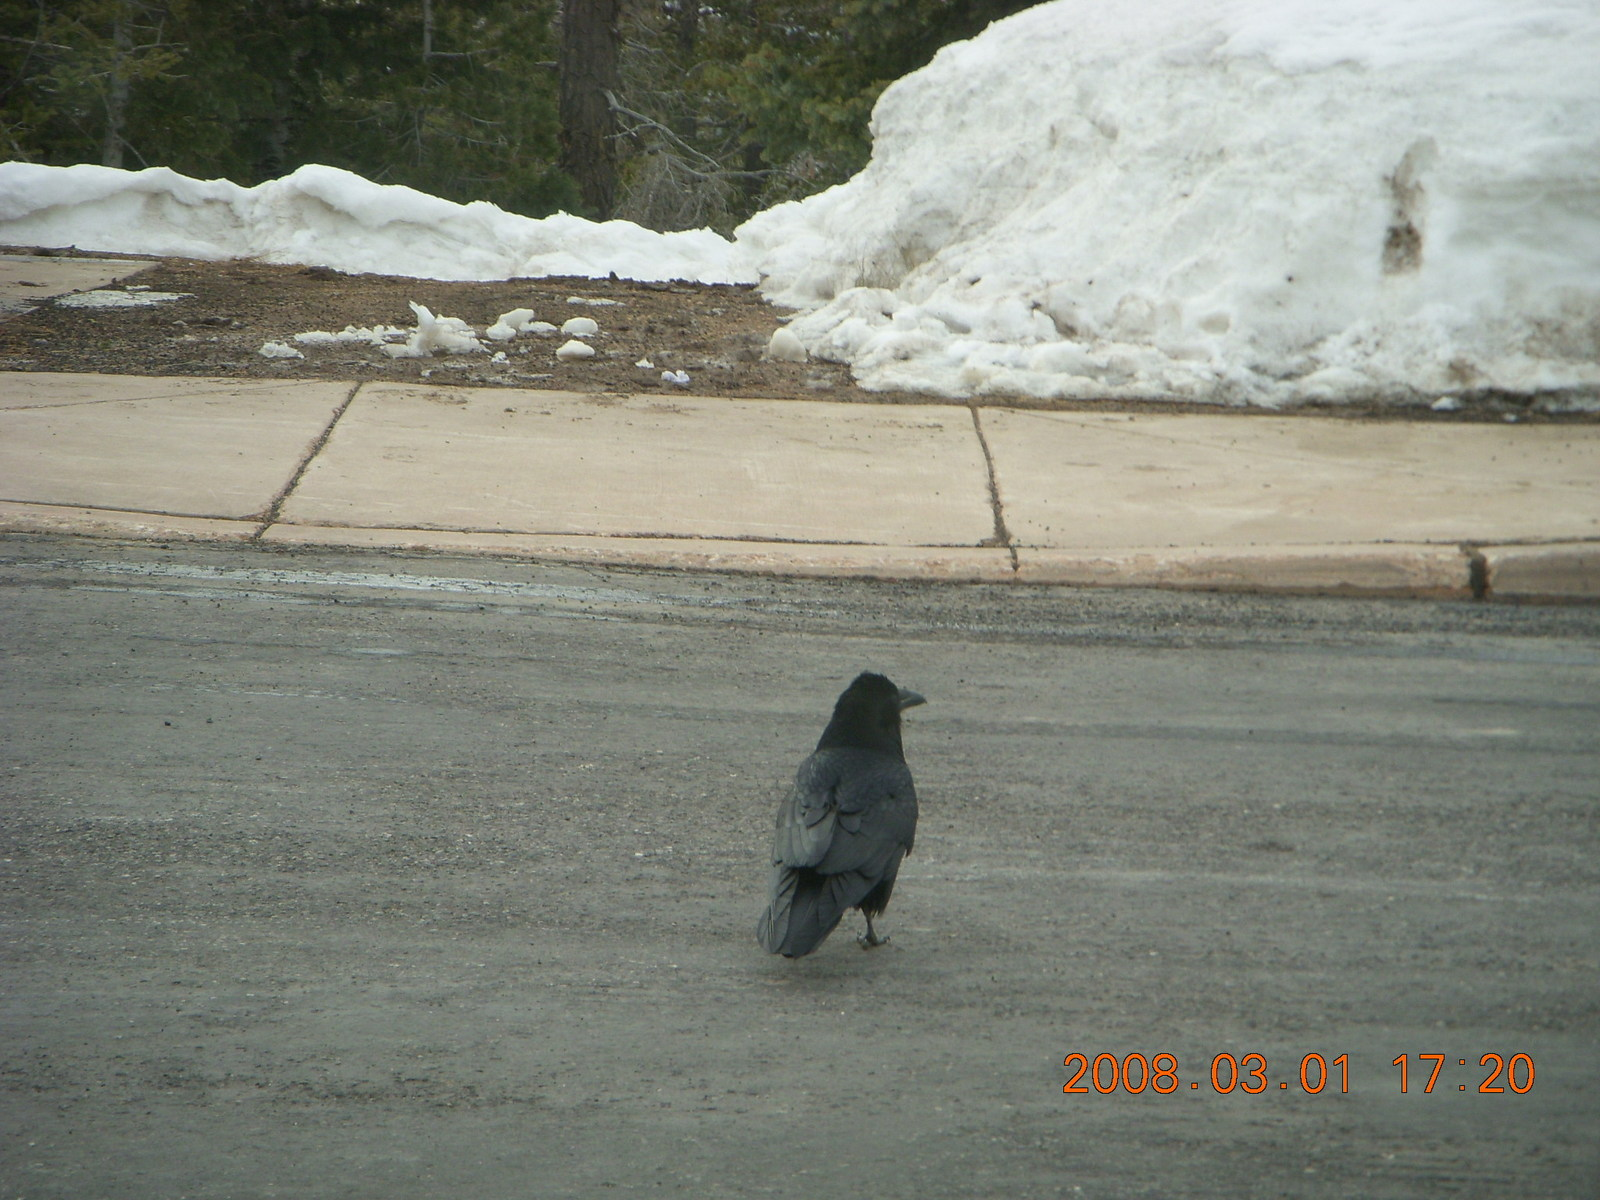 Bryce Canyon - raven in parking lot